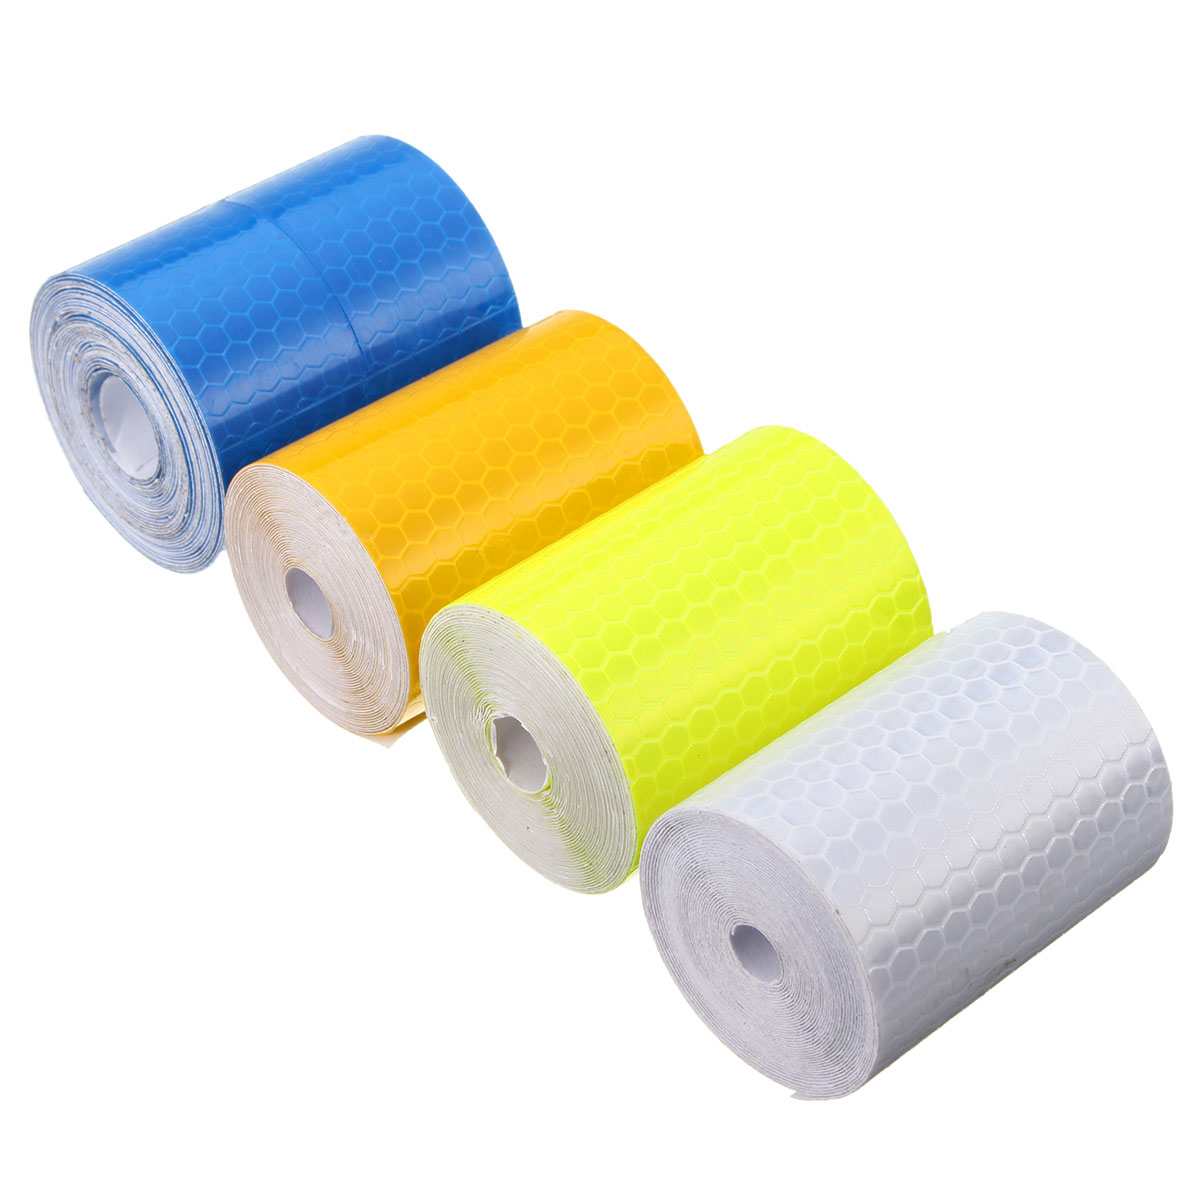 5cm x 300cm Colorful Smooth Surface Water Resistance Reflective Safety Warning Conspicuity Tape Film Sticker ...